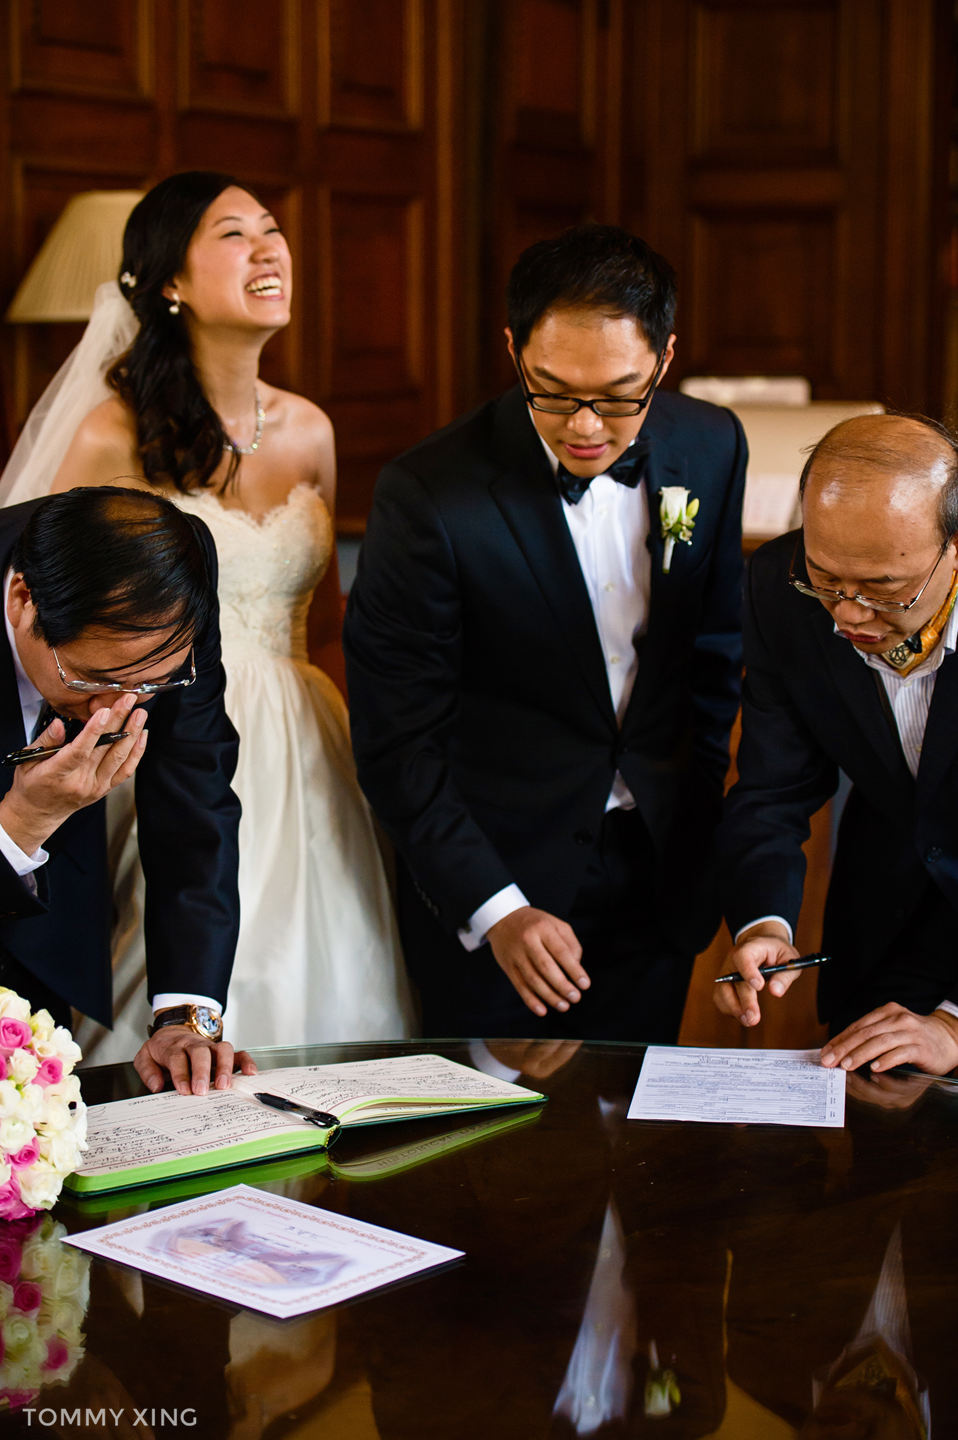 STANFORD MEMORIAL CHURCH WEDDING SAN FRANCISCO BAY AREA 斯坦福教堂婚礼 洛杉矶婚礼婚纱摄影师  Tommy Xing 57.jpg